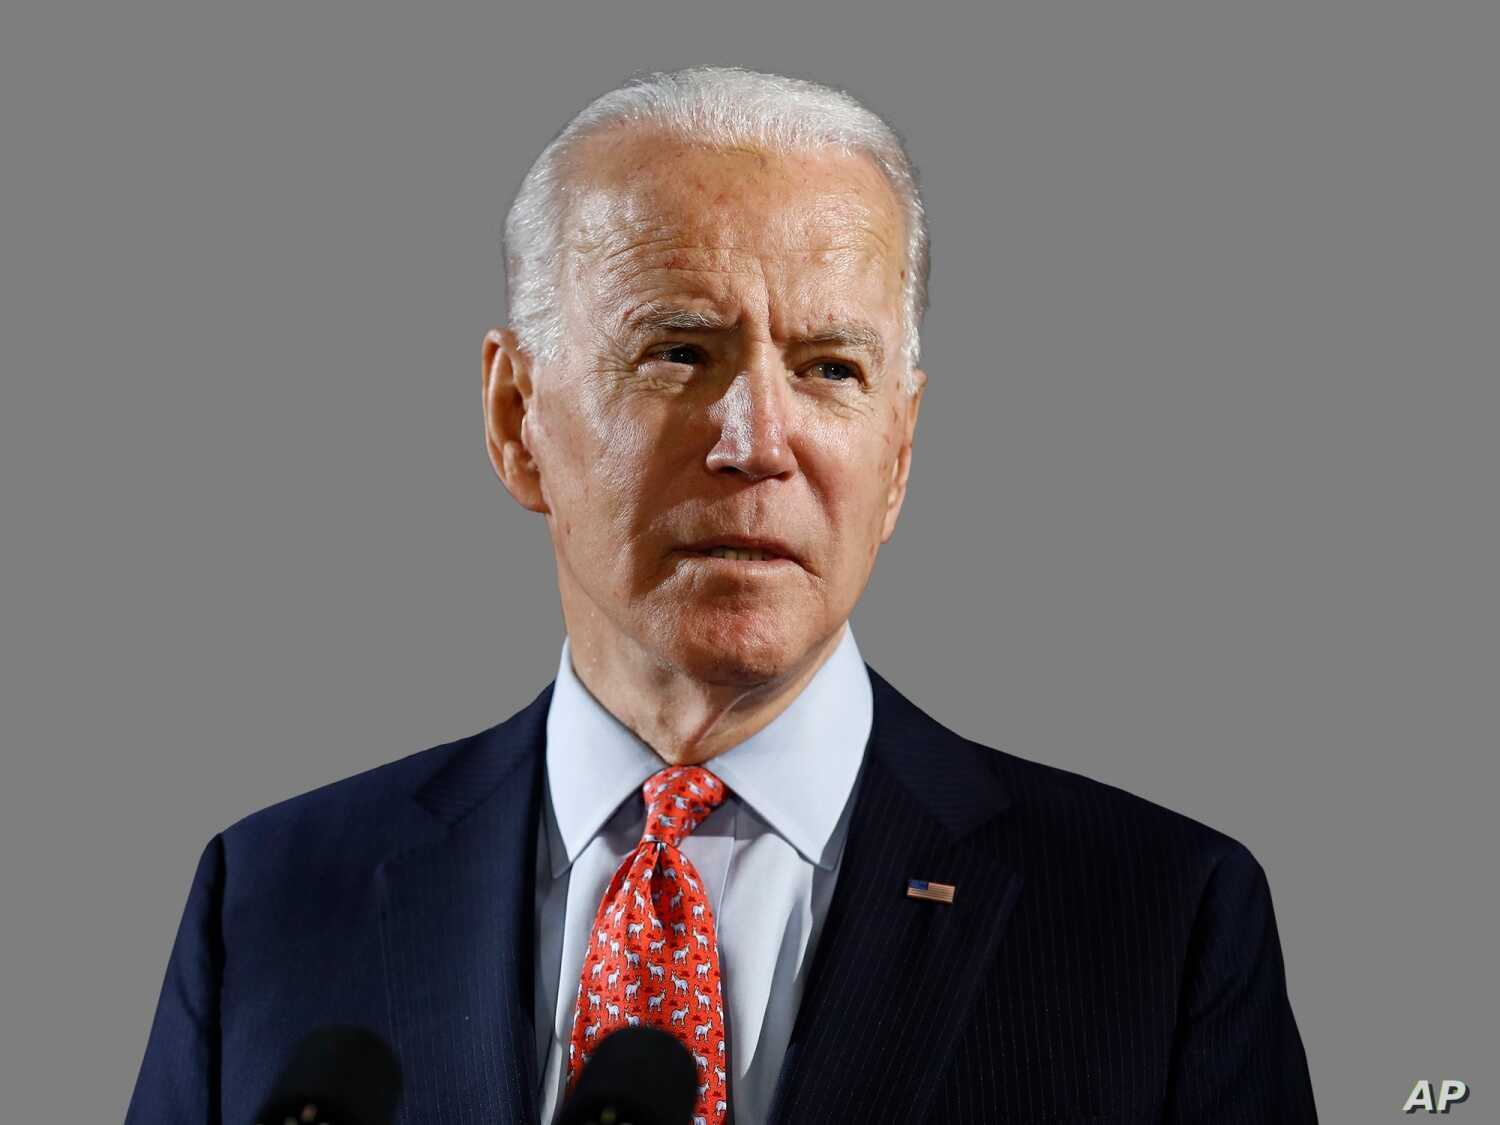 Biden Hires Former Harris Aide To Help With Latino Outreach Voice Of America English